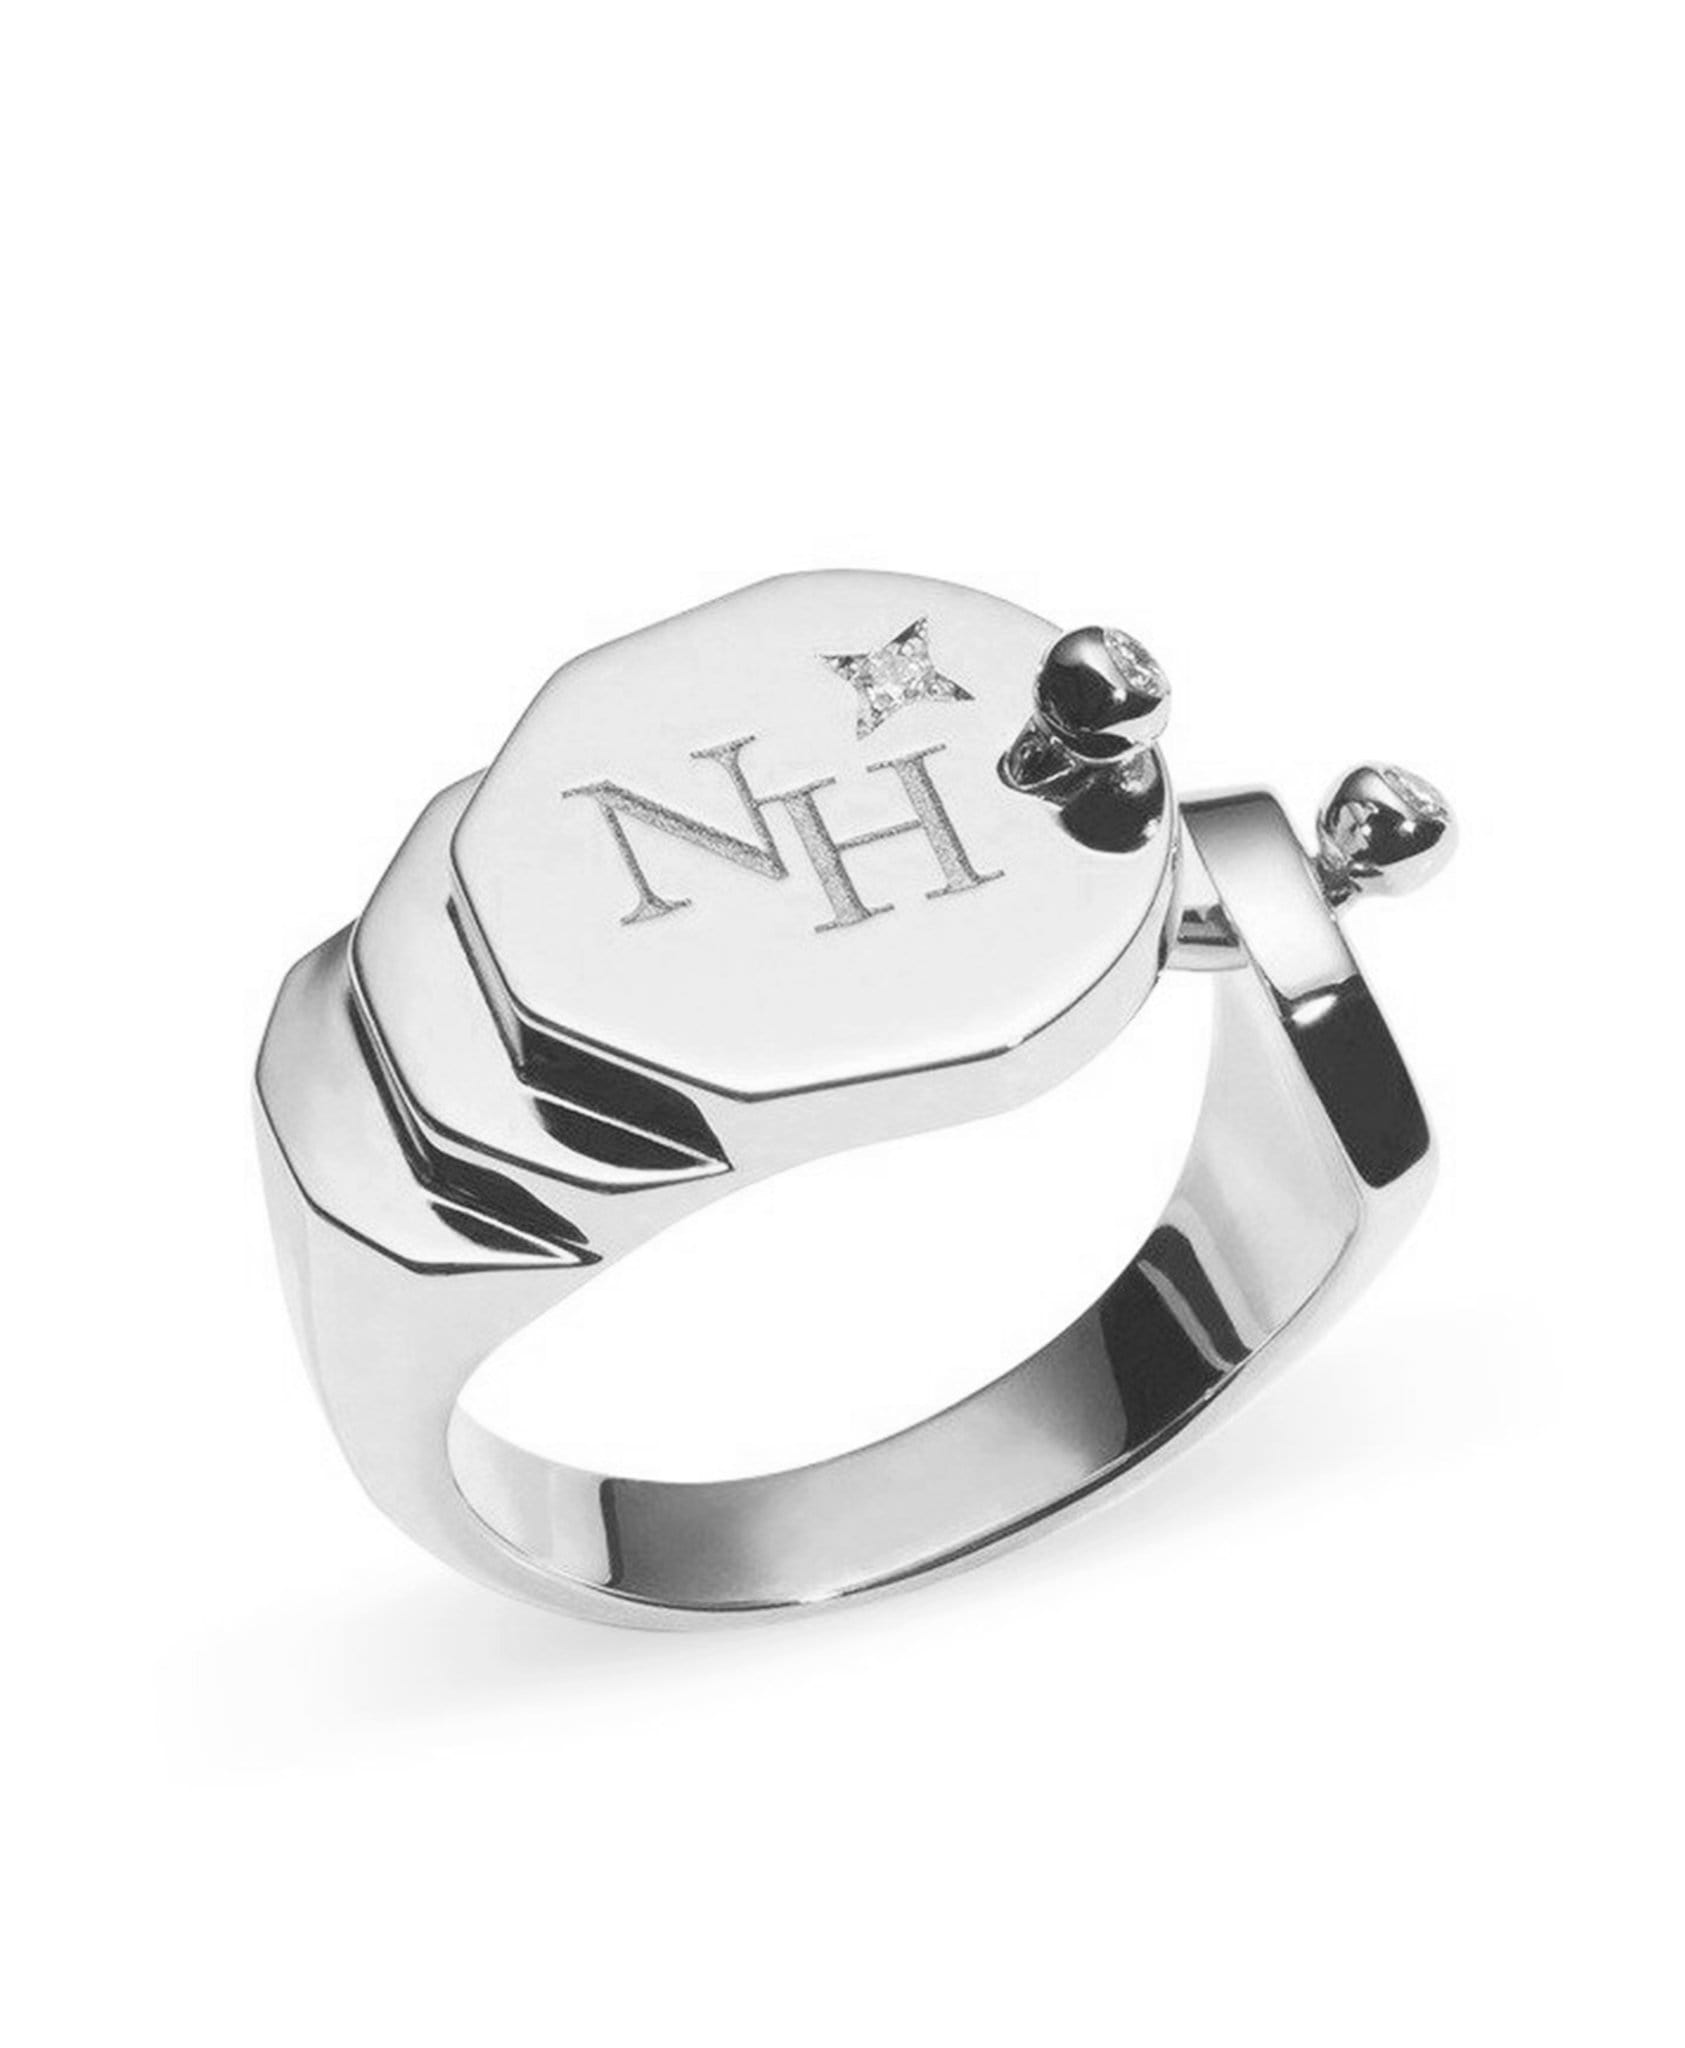 Gold Signet Ring: Discover Luxury Fine Jewelry | Nouvel Heritage || White Gold